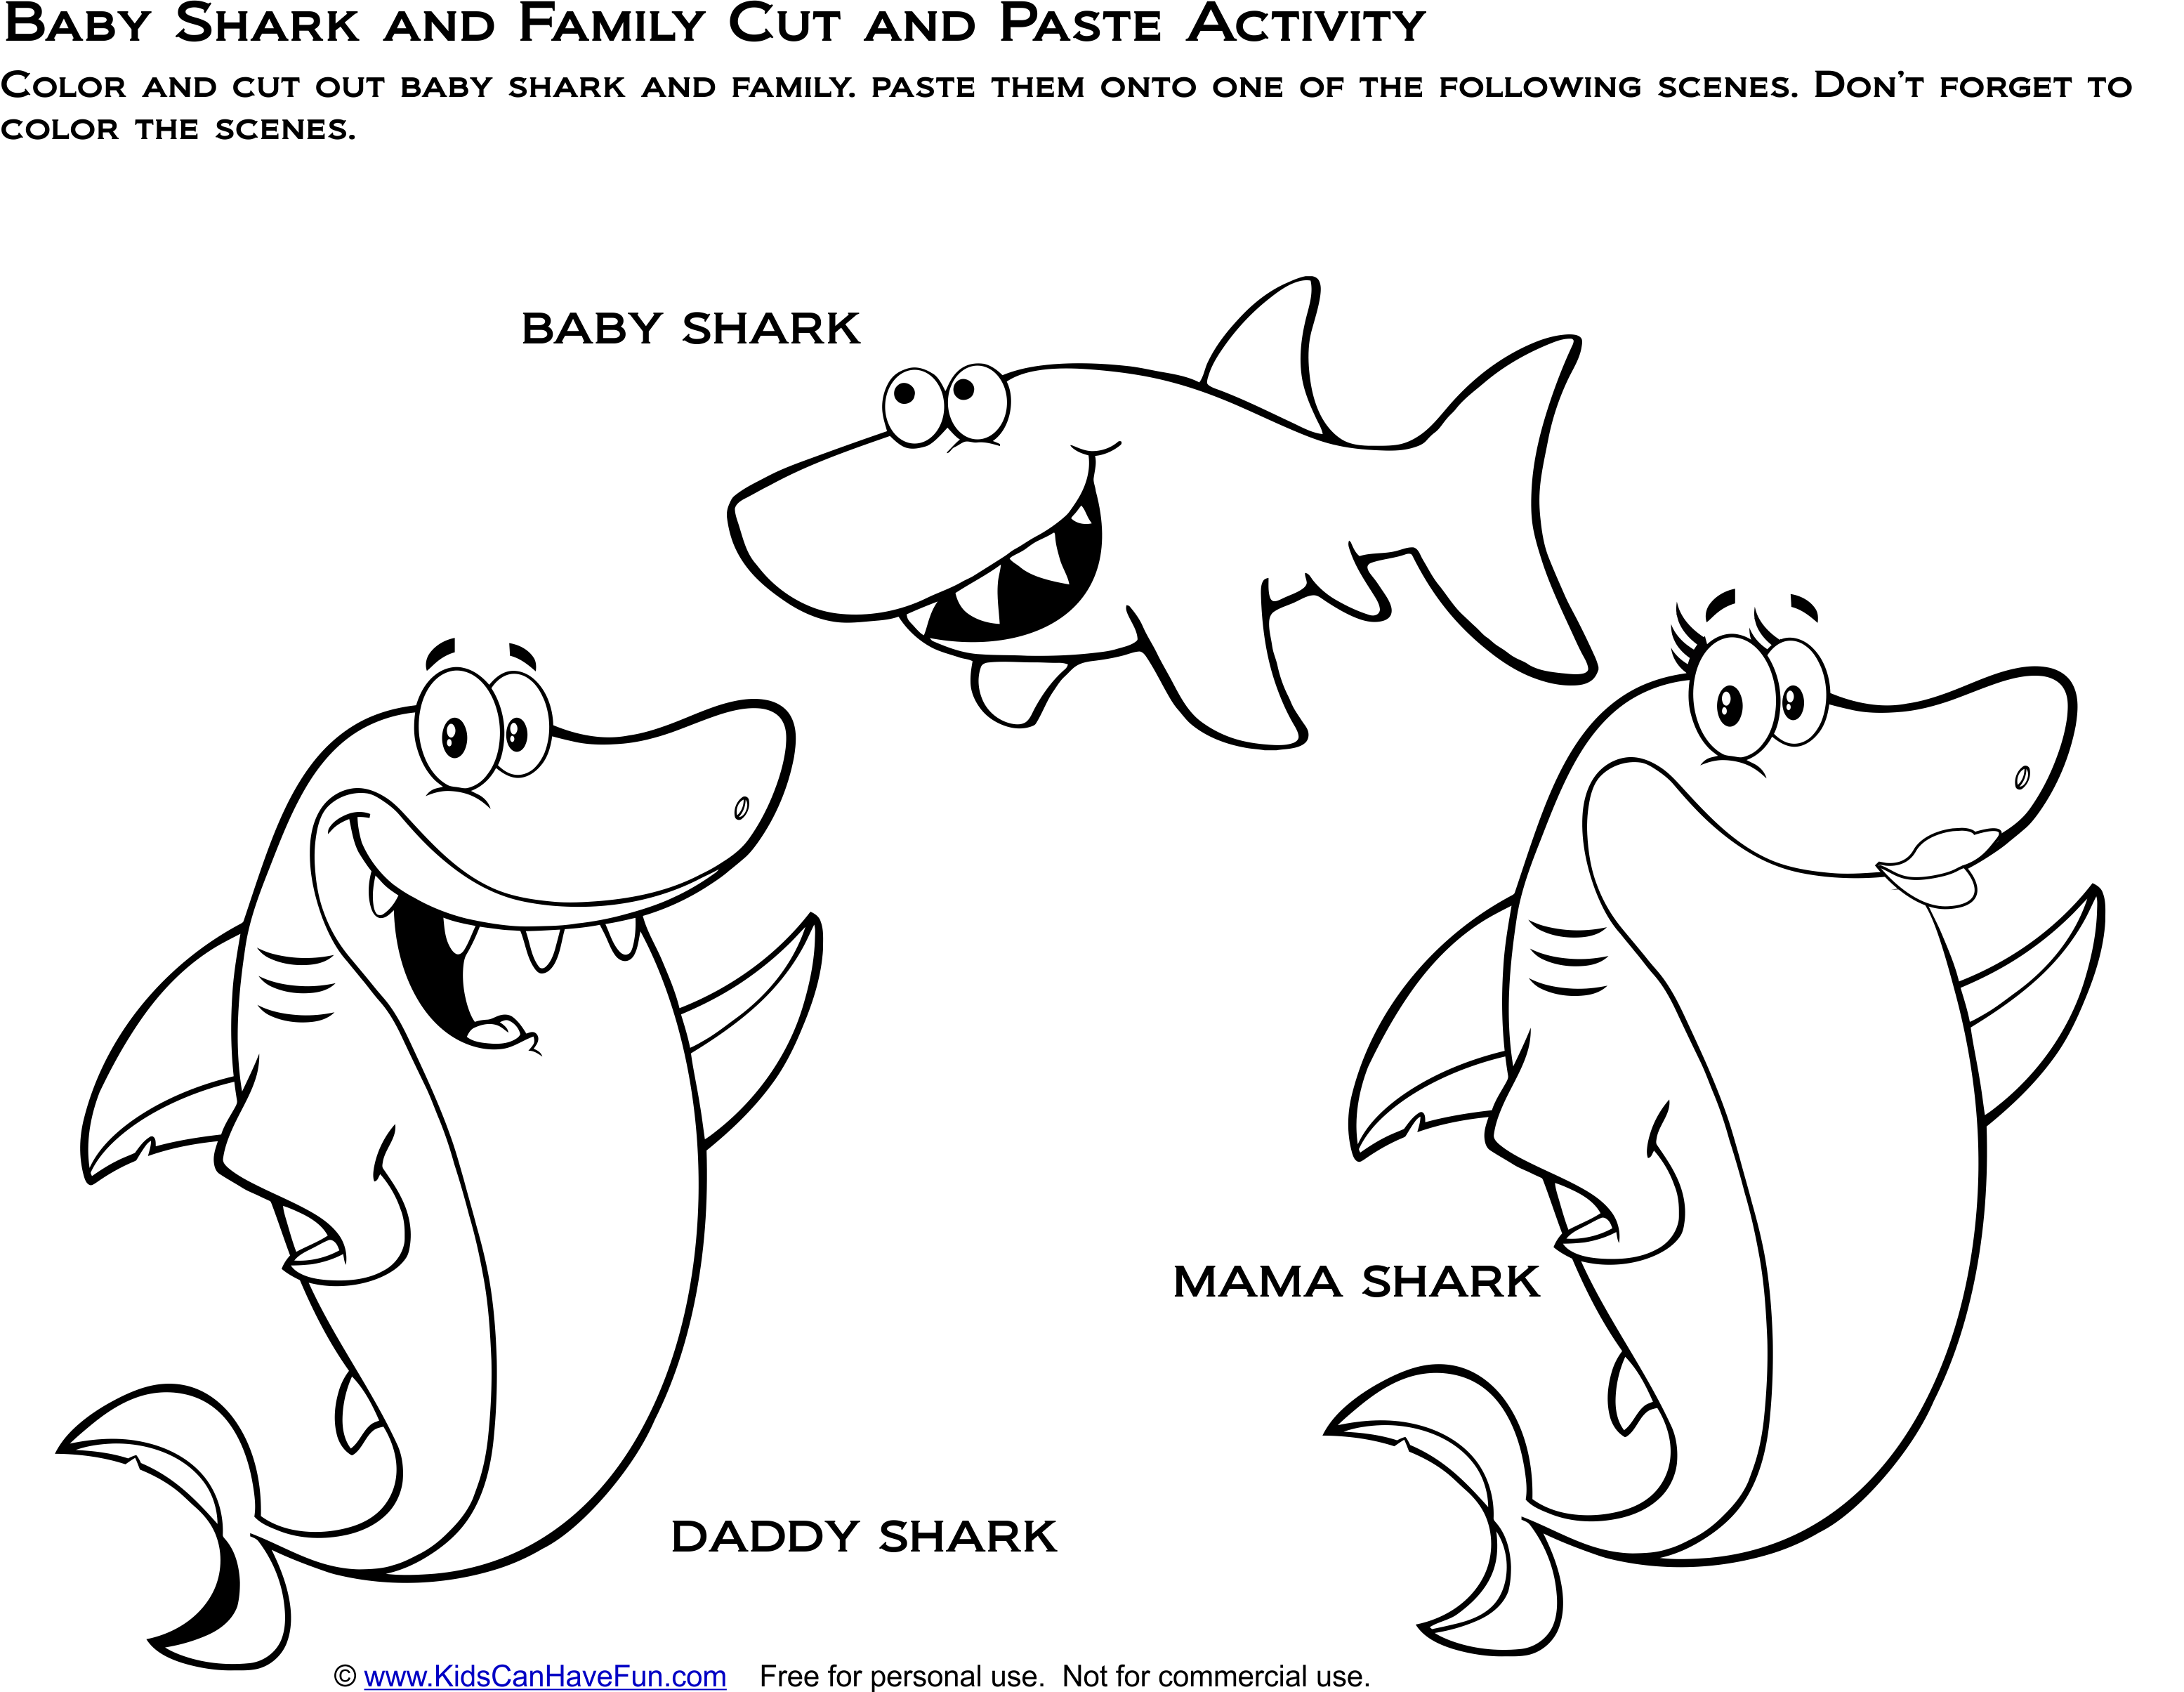 Baby Shark And Family Cut And Paste Activity Cut Out The